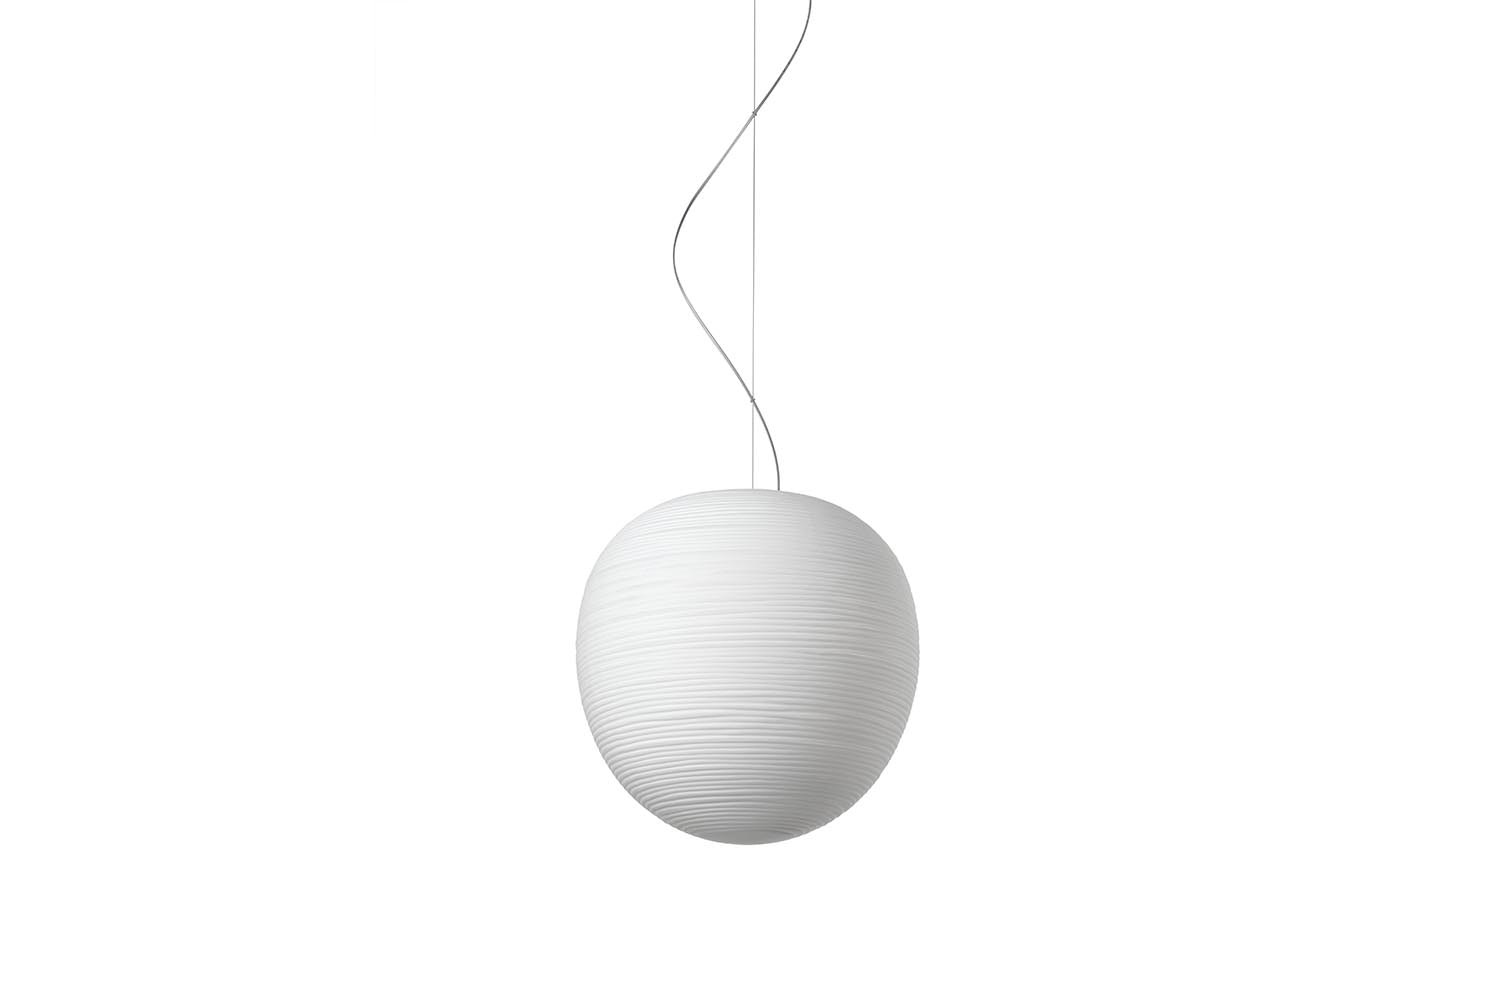 Rituals XL Suspension Lamp by Ludovica & Roberto Palomba for Foscarini